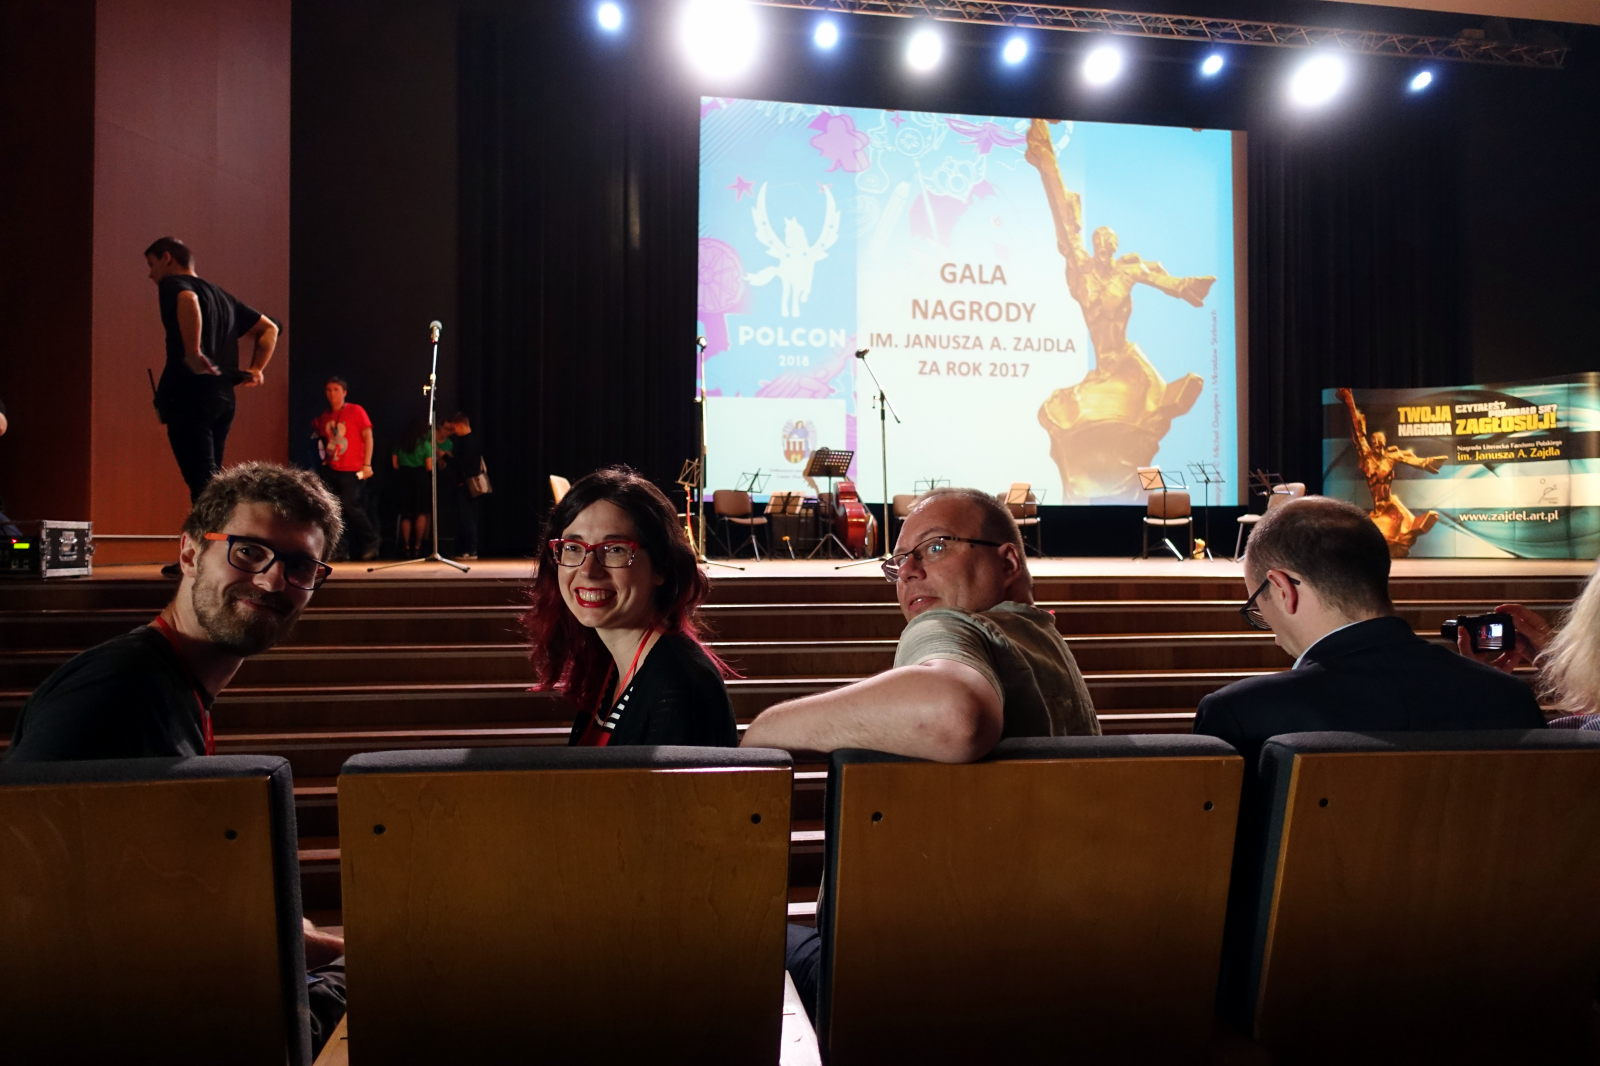 Three people sit in the fron row of an auditorium are turned back to face the photographer. In fron of the first row there is a scene with big screen showing convention logo and Janusz. A Zajdel Award statuette.